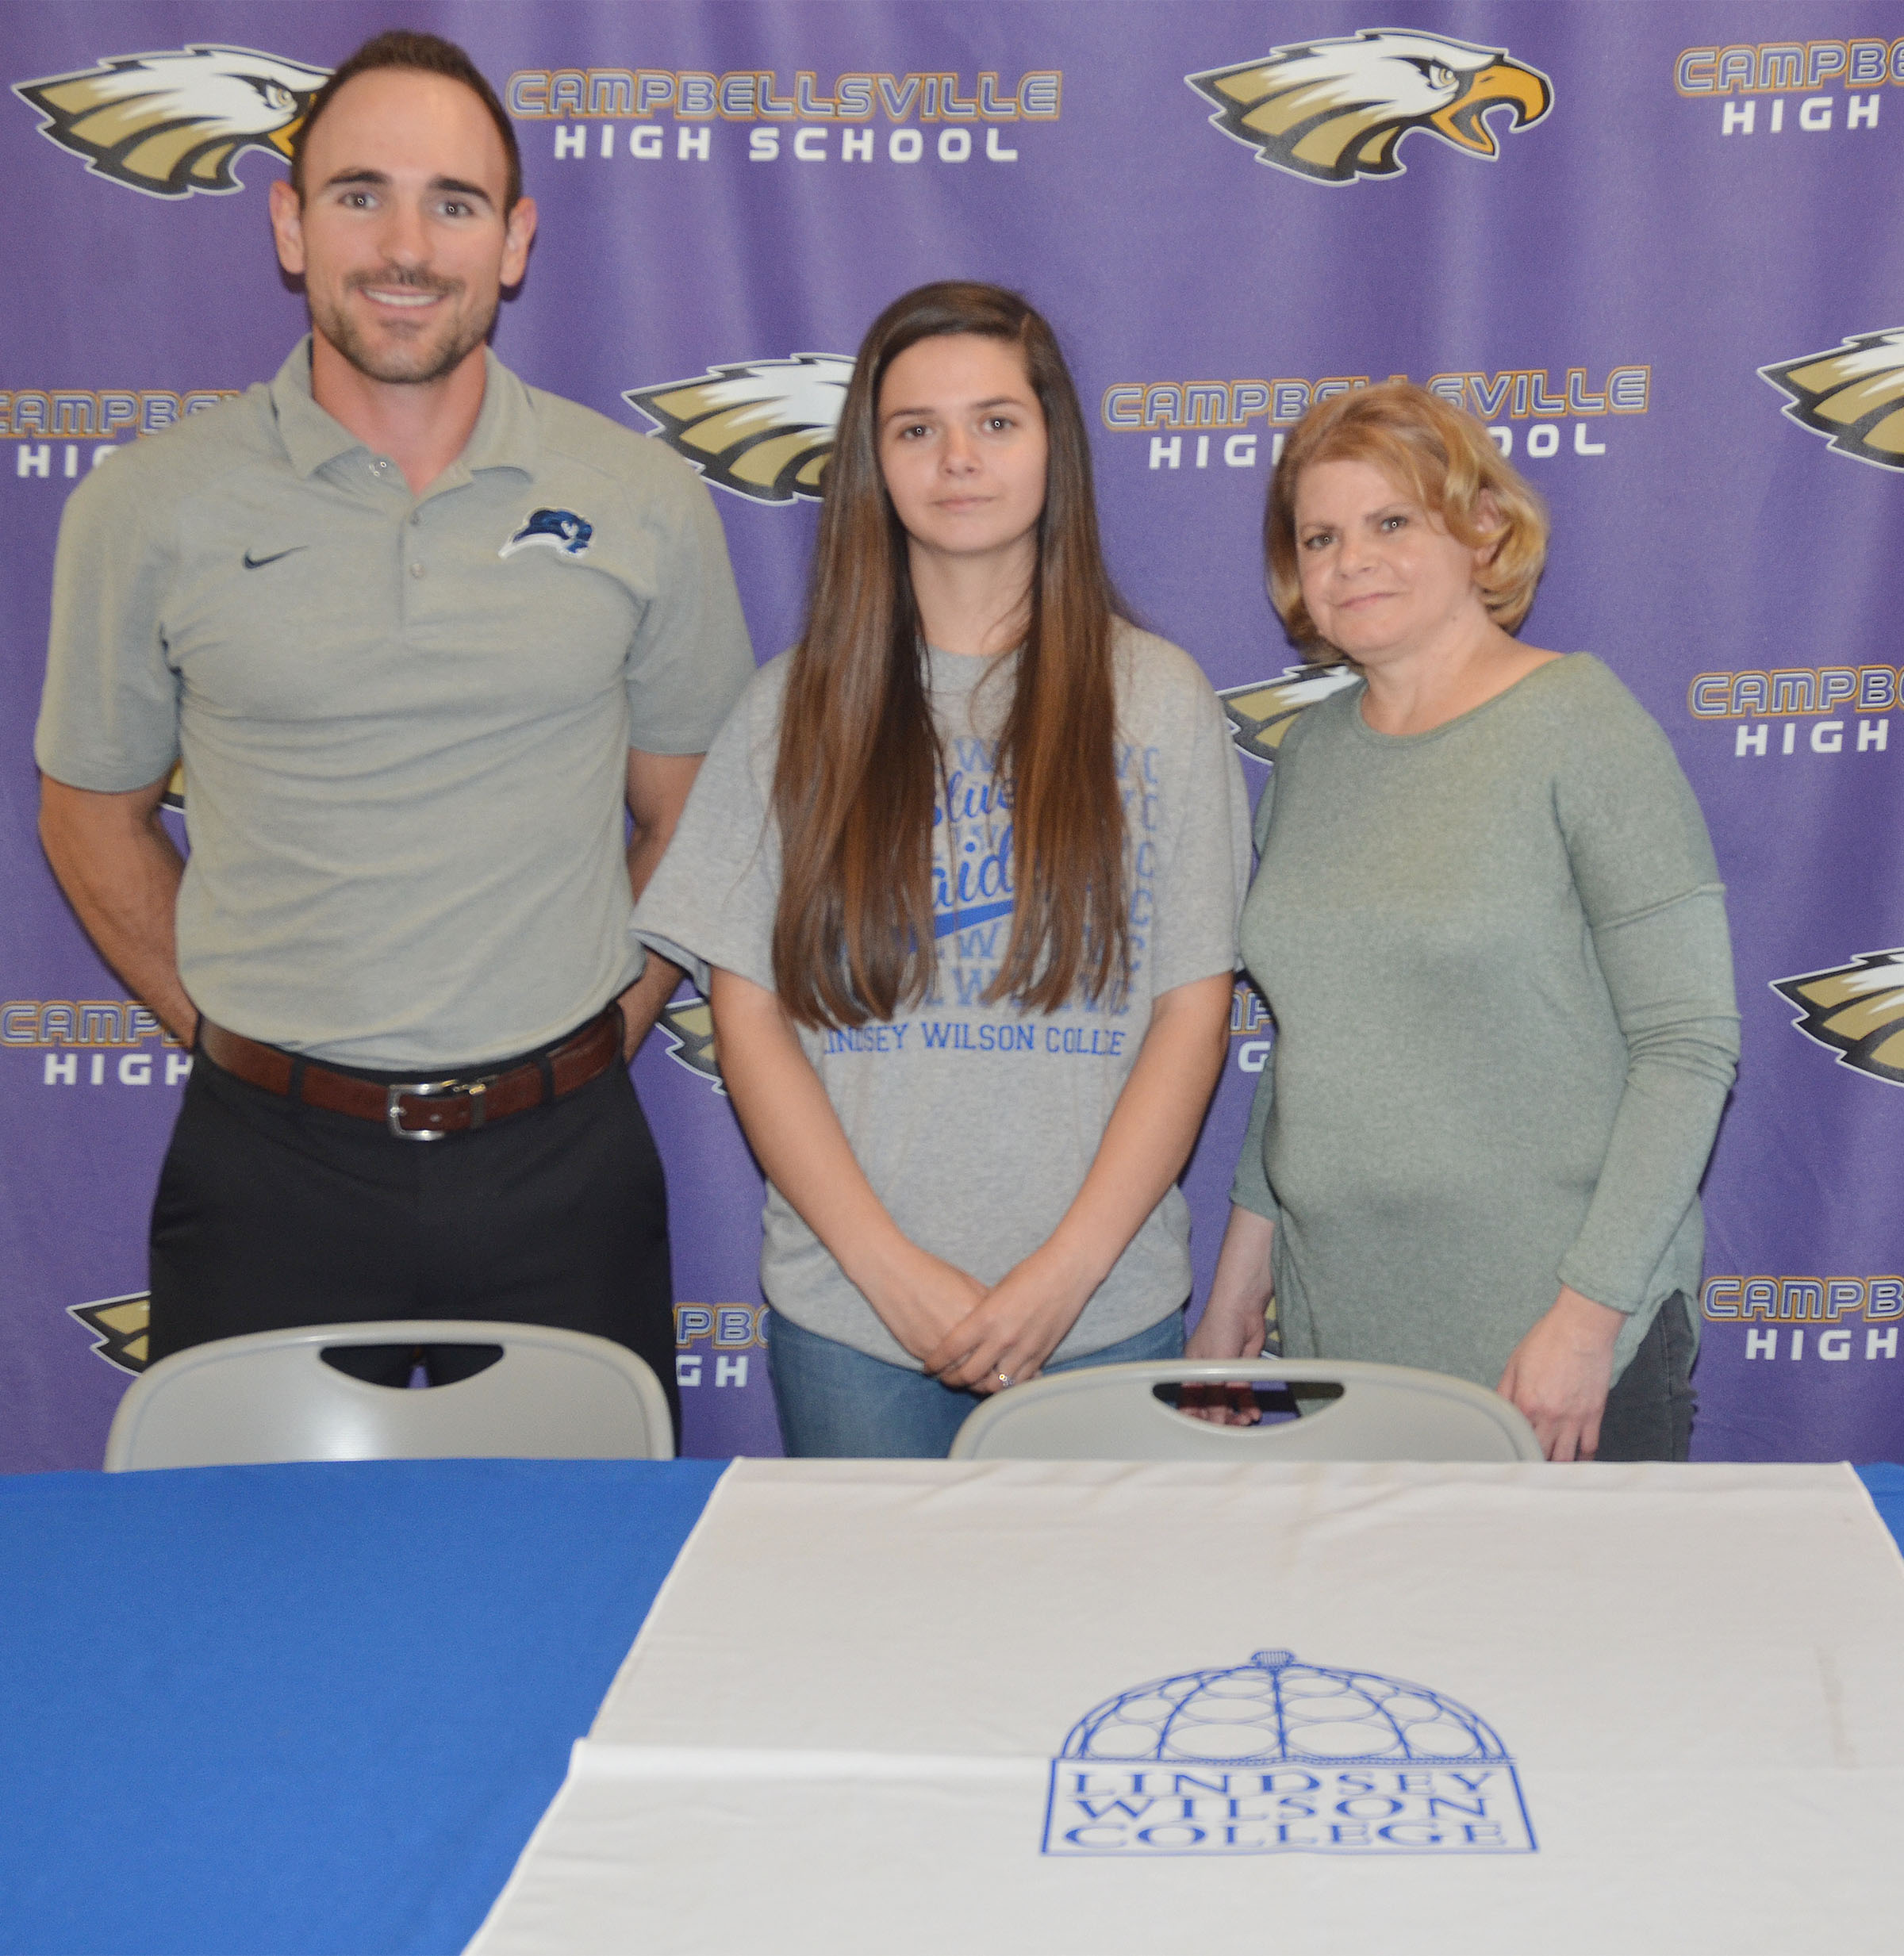 Campbellsville High School senior Shauna Jones will continue her academic and tennis career at Lindsey Wilson College this fall. She is pictured with LWC head coach Marlon Dal Pont, at left, and her mother Dana Pearl.